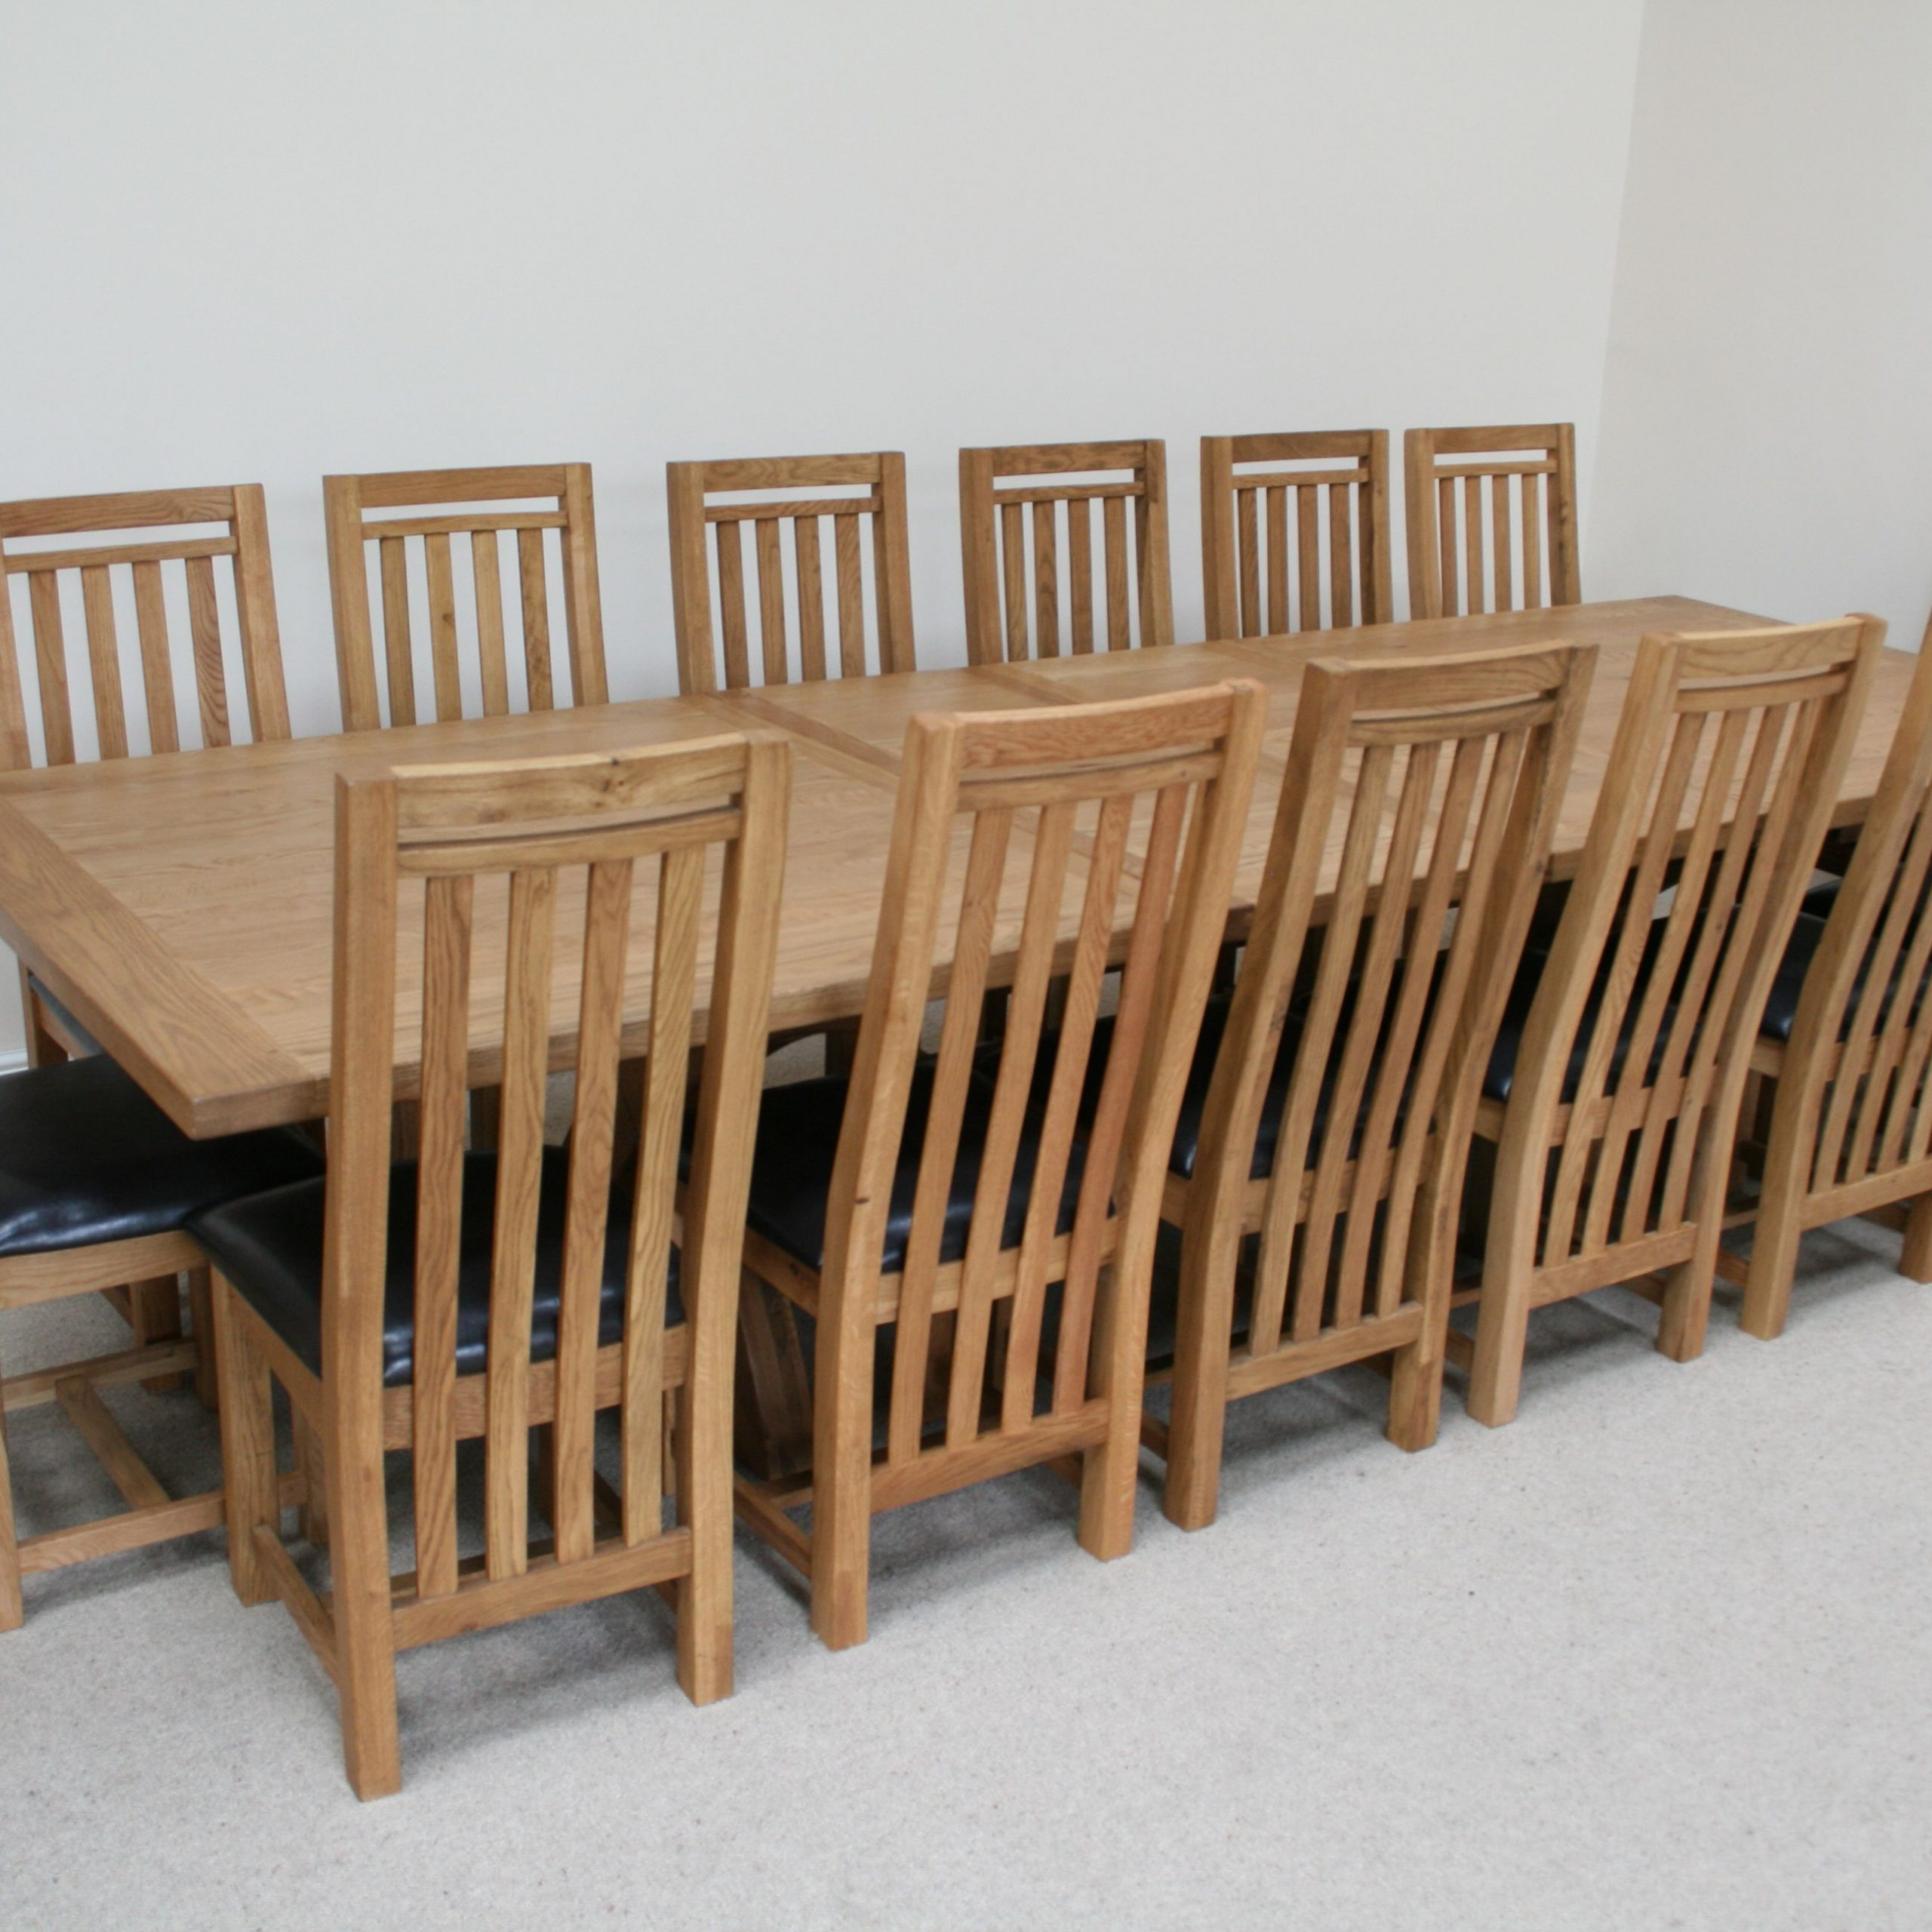 Favorite 8 Seater Wood Contemporary Dining Tables With Extension Leaf Within Furniture : Expandable Dining Table For 10 Pringombo Home (View 12 of 25)